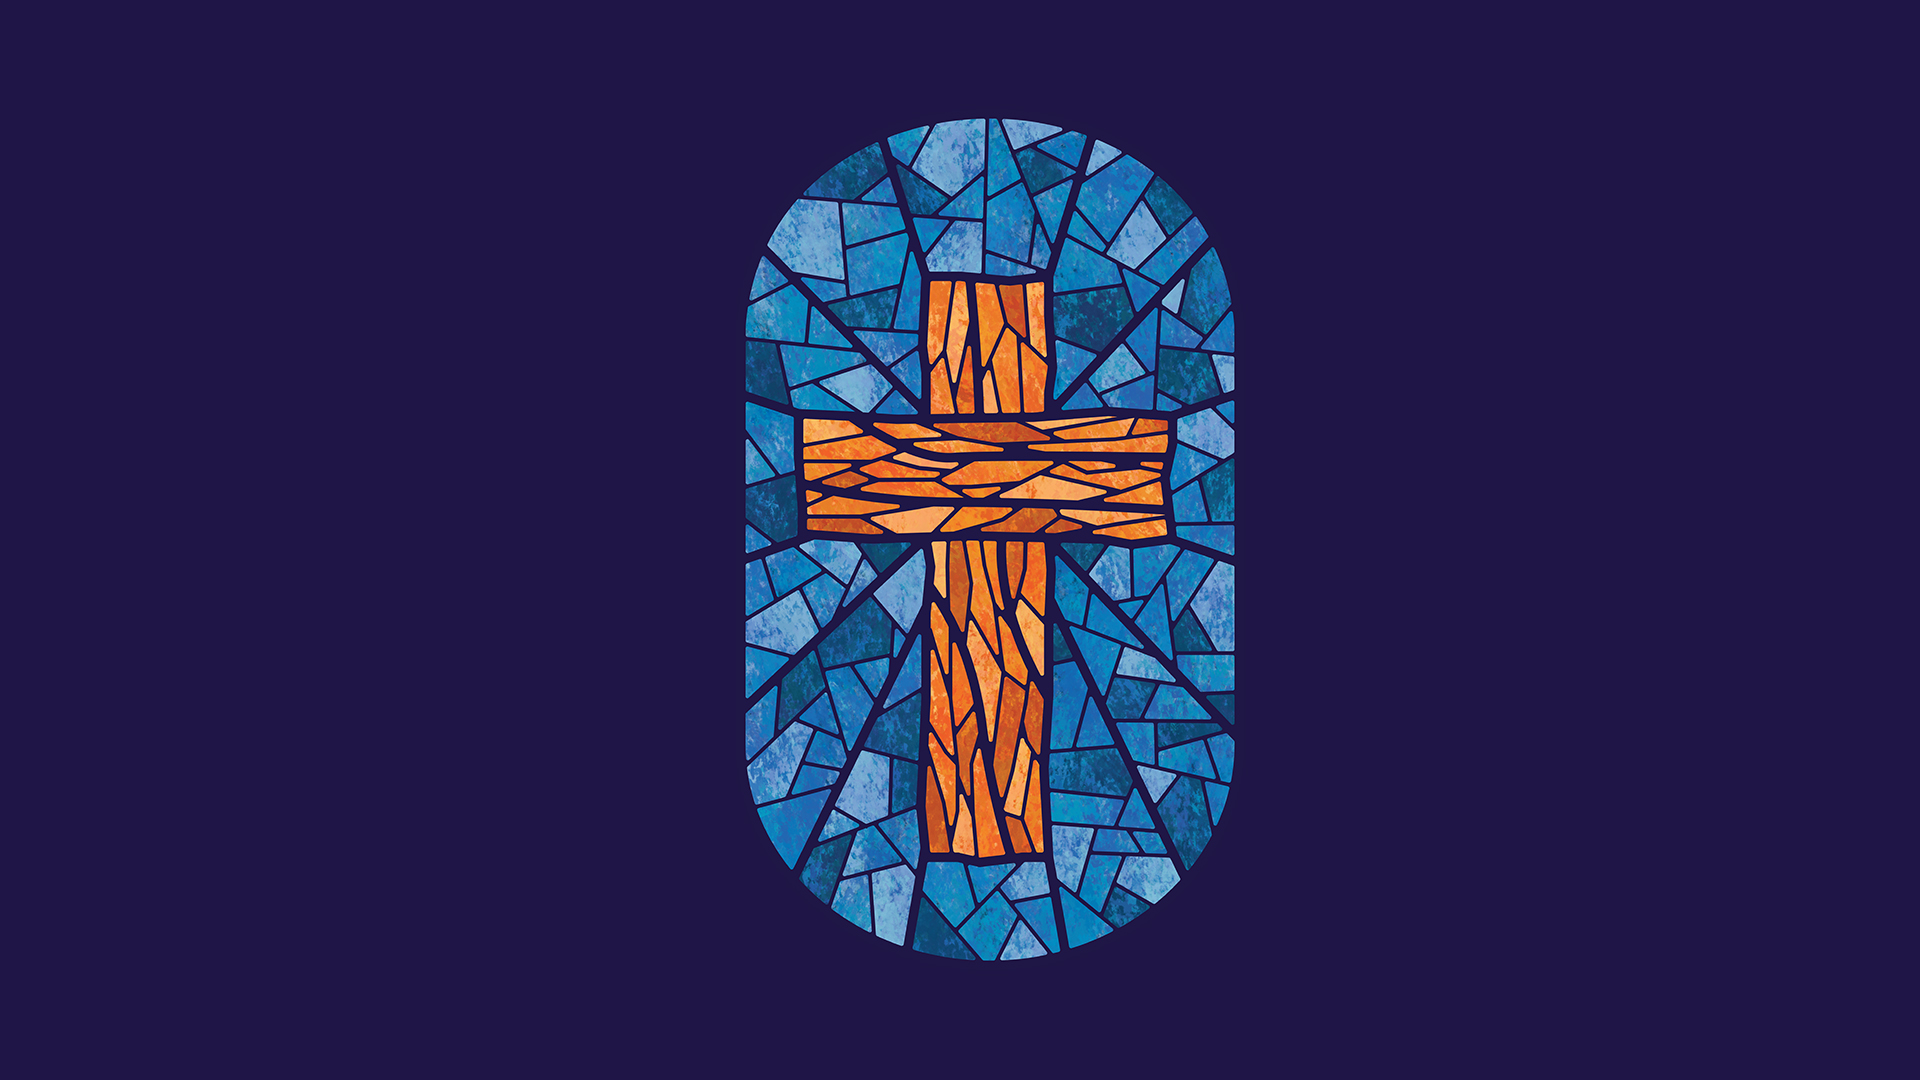 A stained glass style illustration of the cross, representing Christ the saviour.